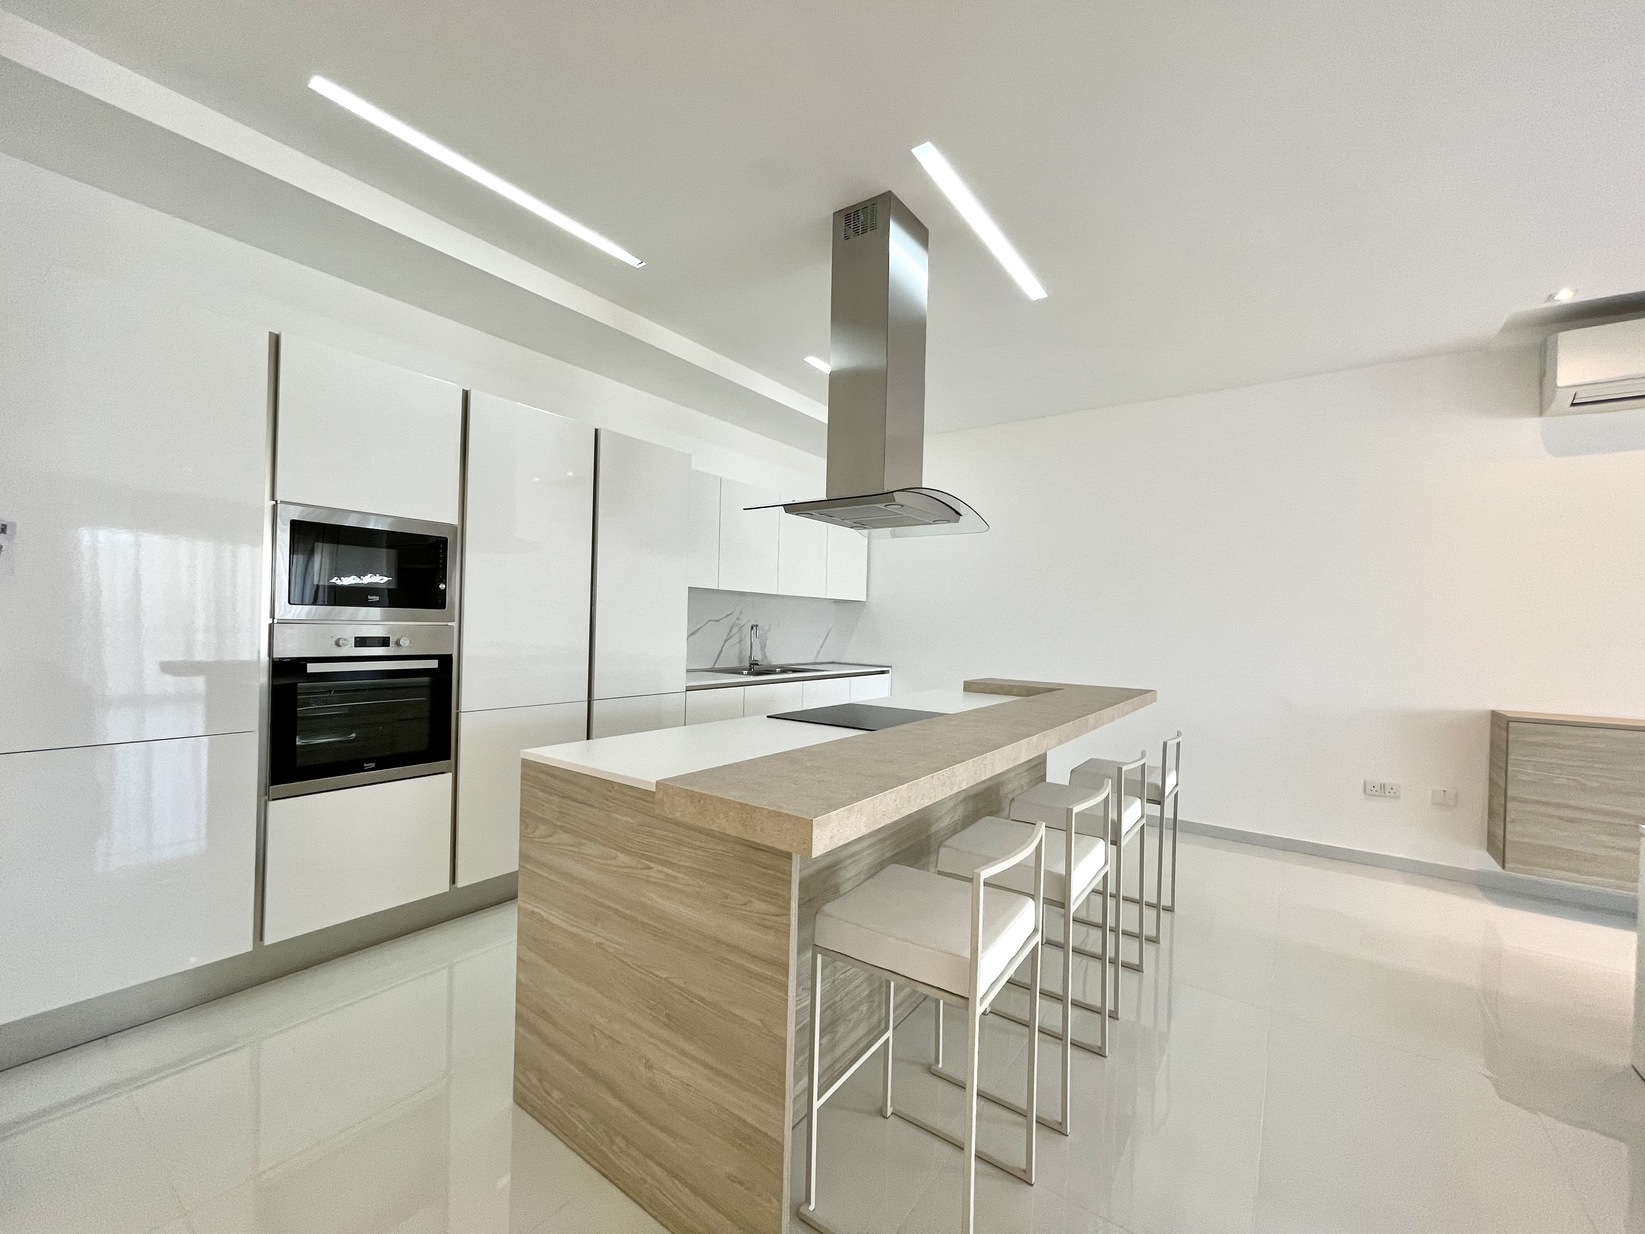 3 bed Apartment For Rent in Zejtun, Zejtun - thumb 5